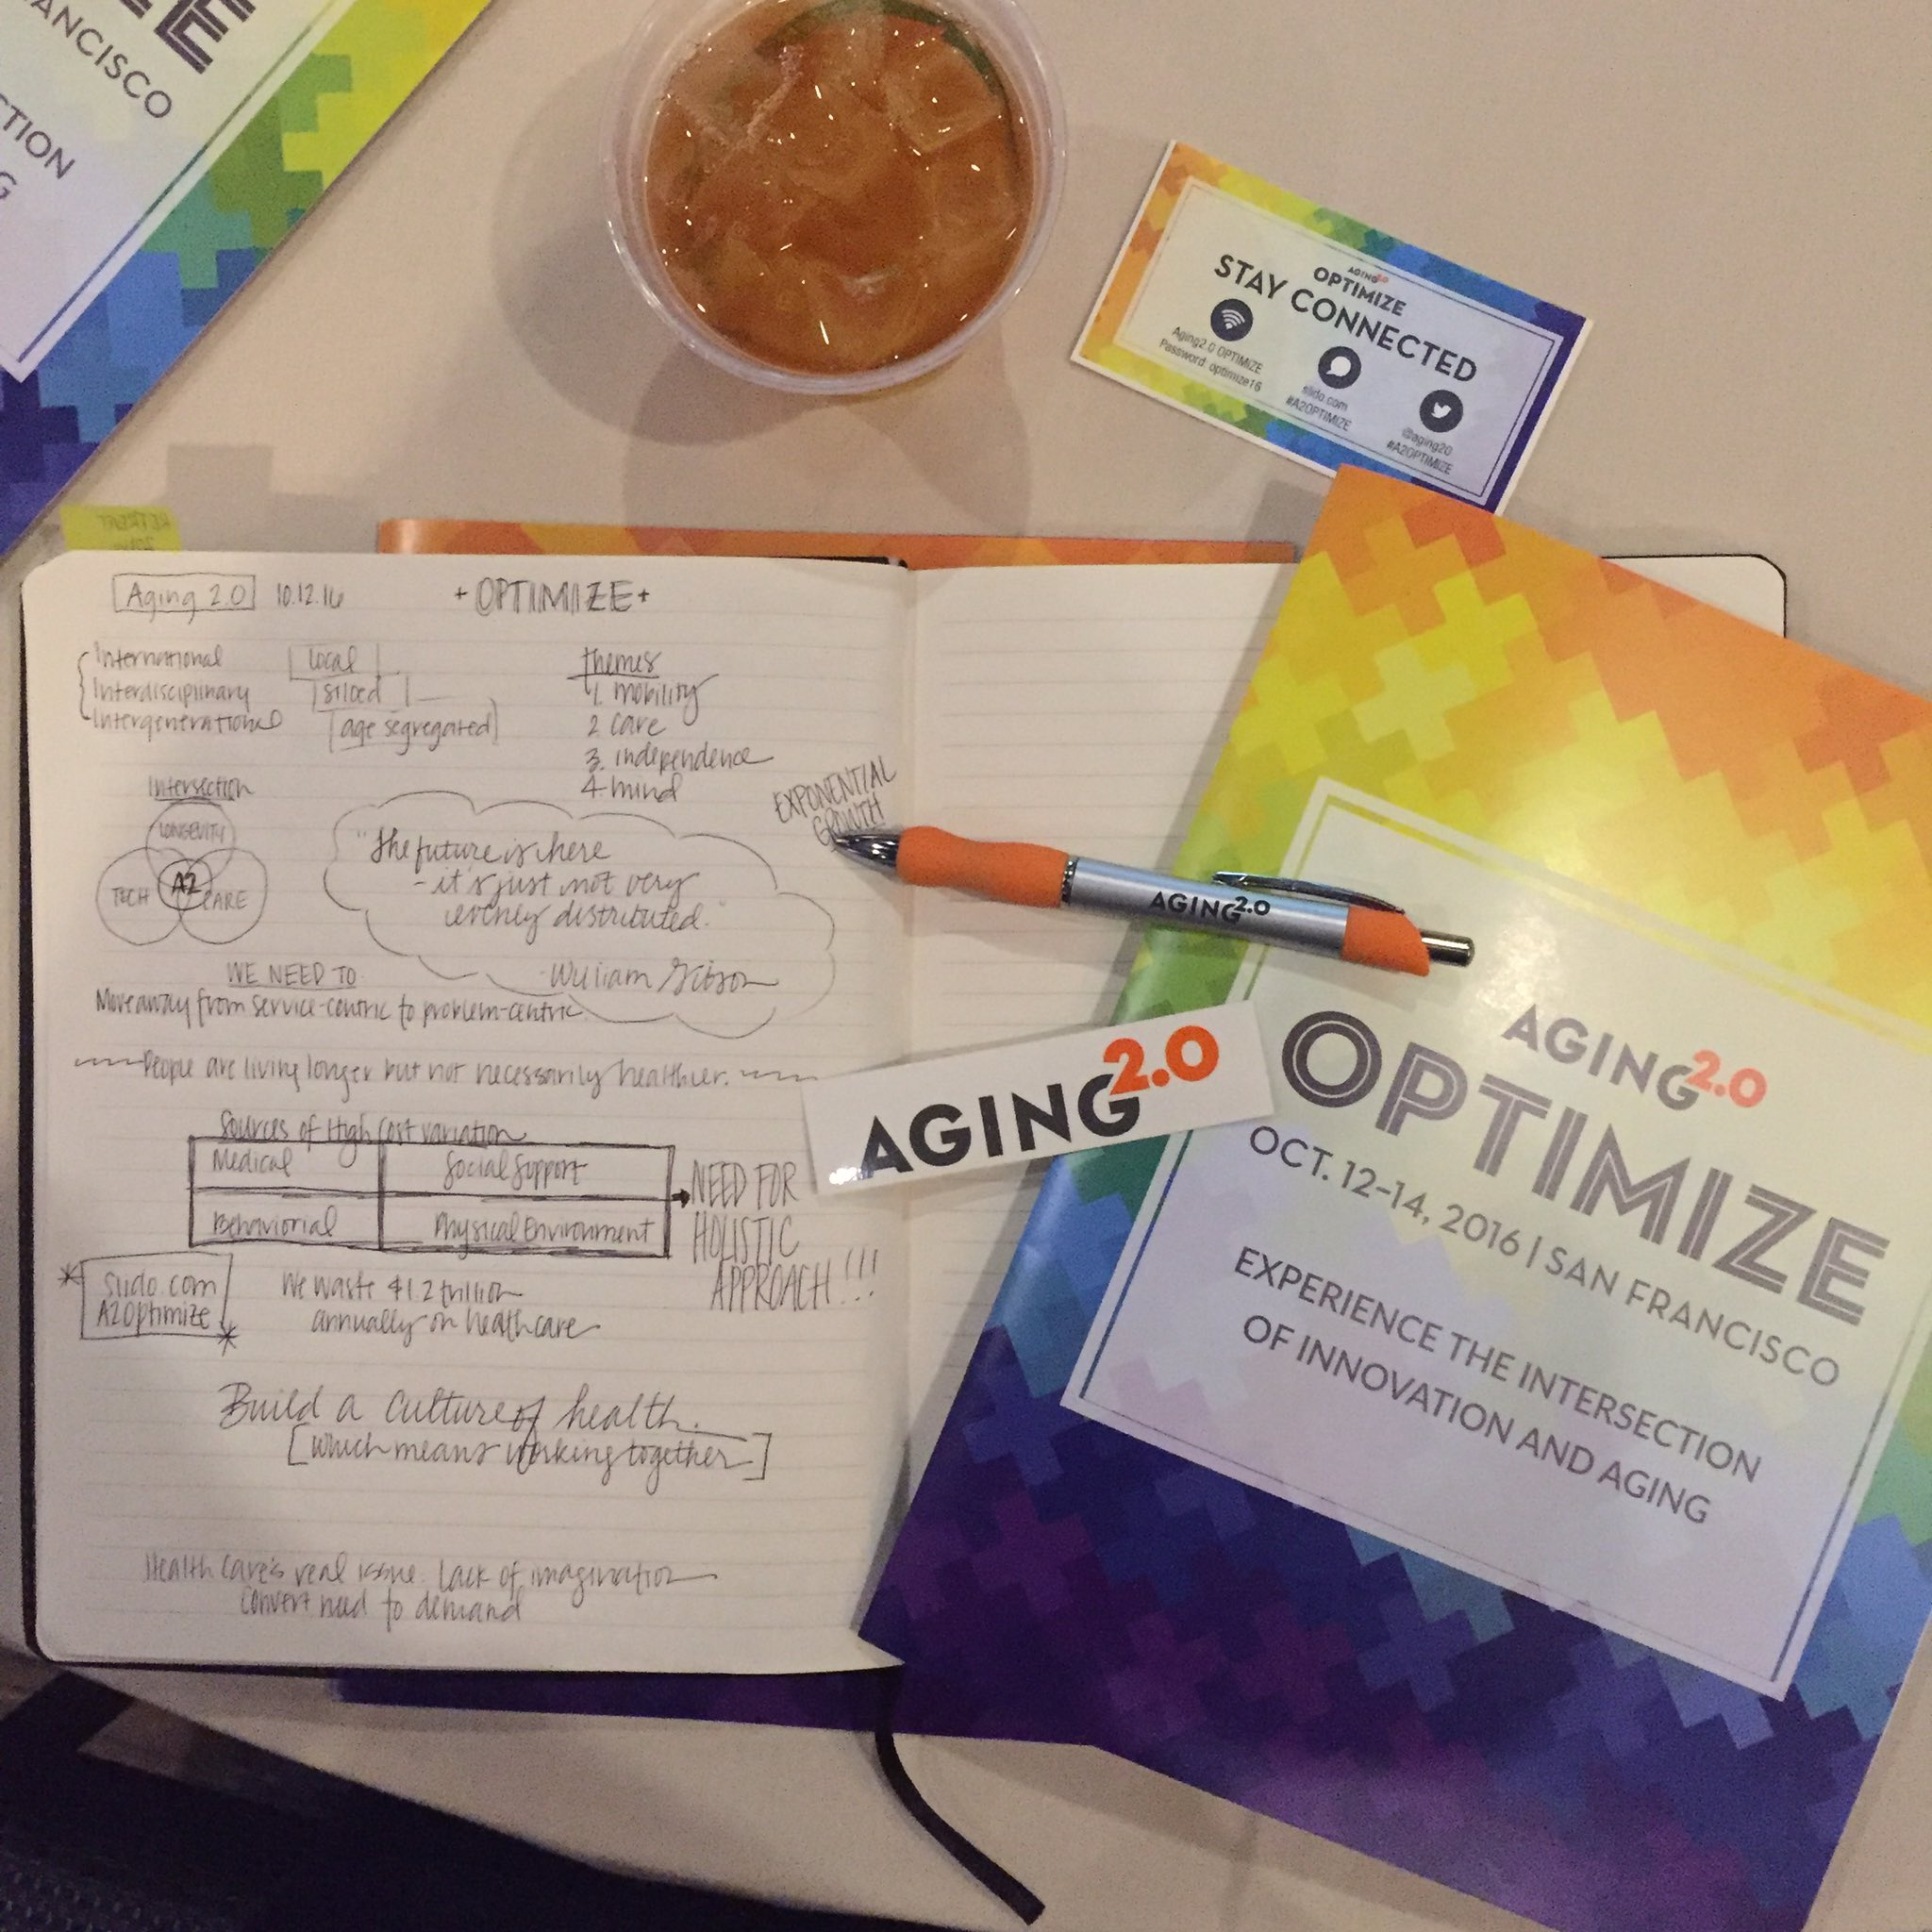 There's so much happening and being gathered here @Aging20. #A2OPTIMIZE Thanks #Aging20 team! https://t.co/gPv7fOJgyb